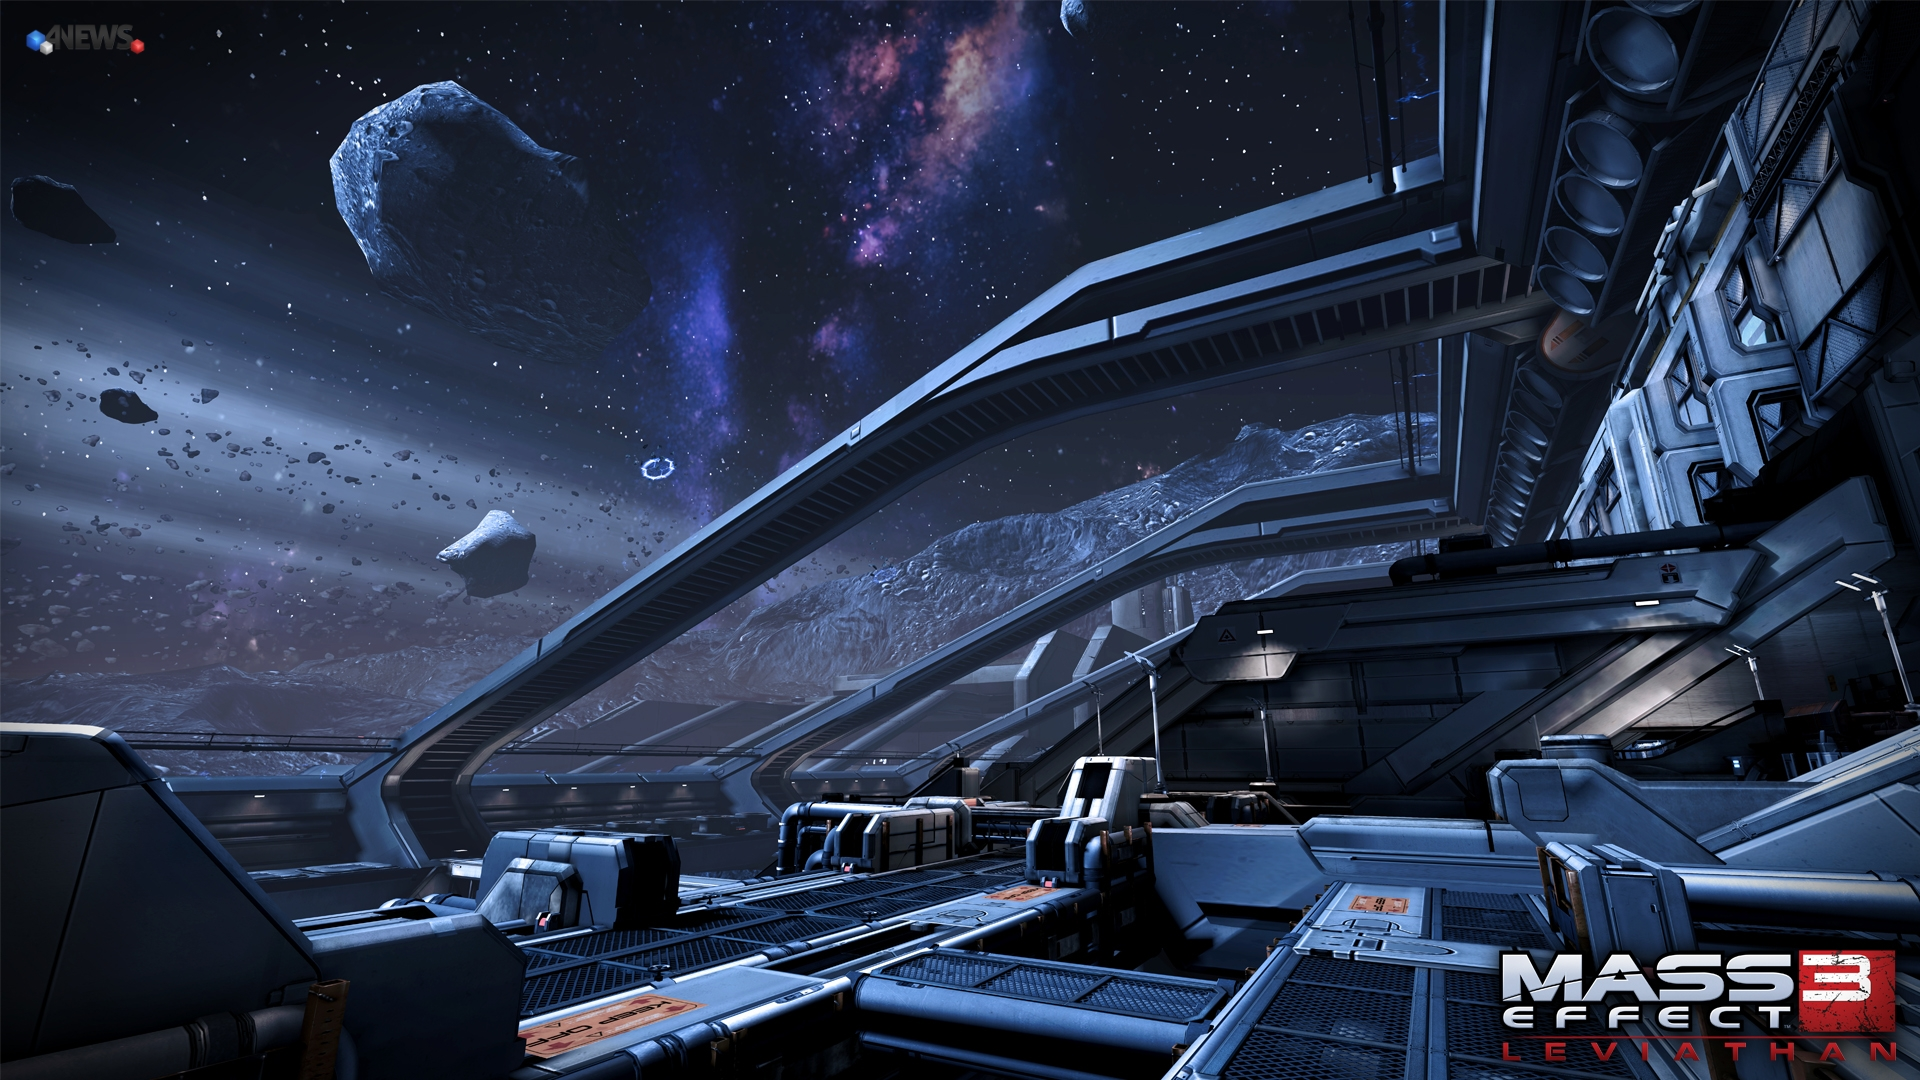 Leviathan Launch 02 - Recensione Leviathan, DLC di Mass Effect 3